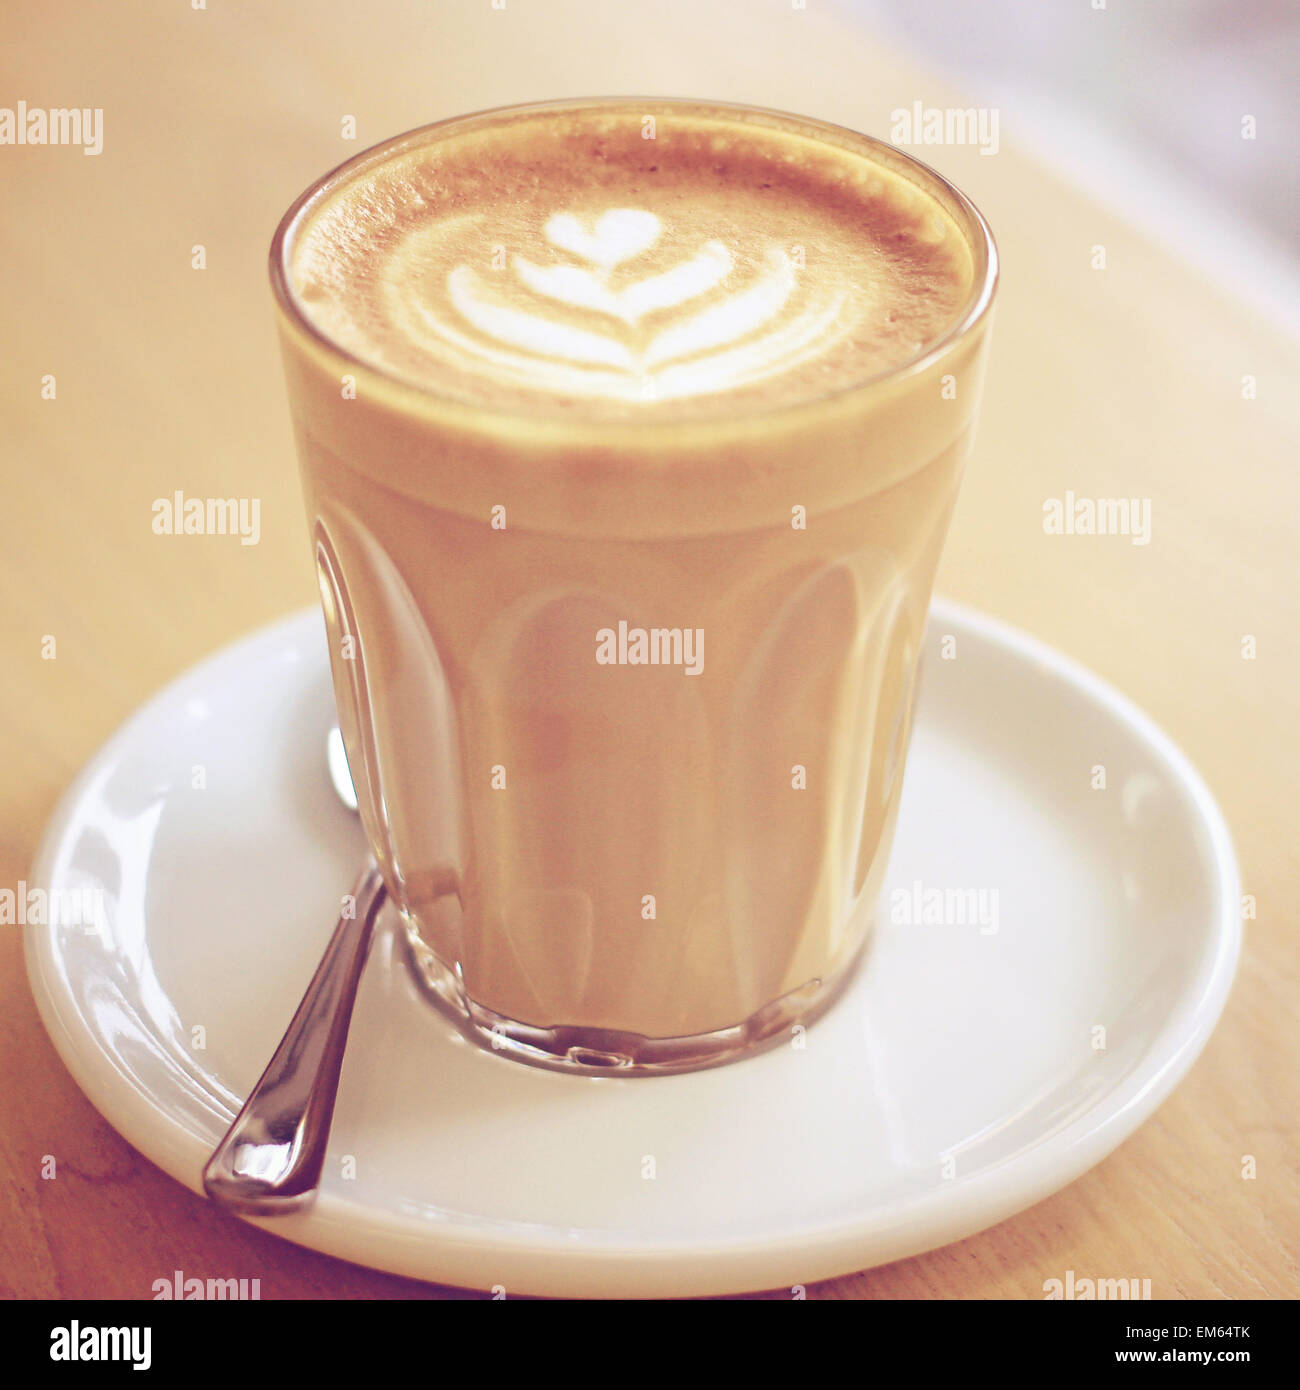 Cup of art latte or cappuccino coffee with retro filter effect - Stock Image